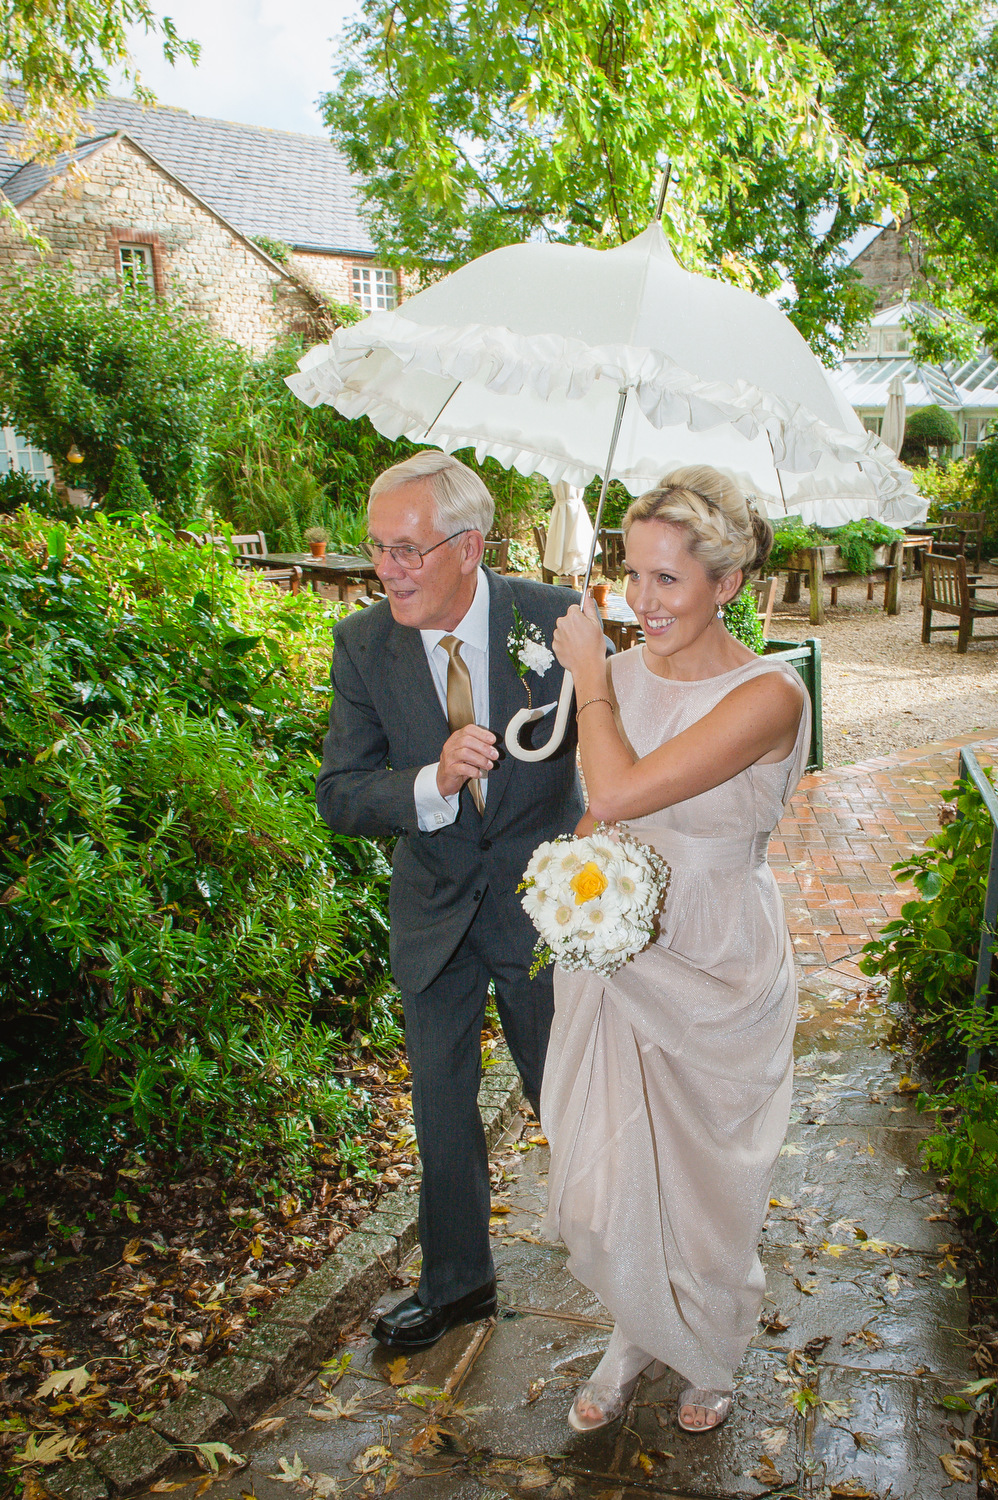 charnwood_weddings_barnsdale_lodge_rutland_dave_j100ane.JPG